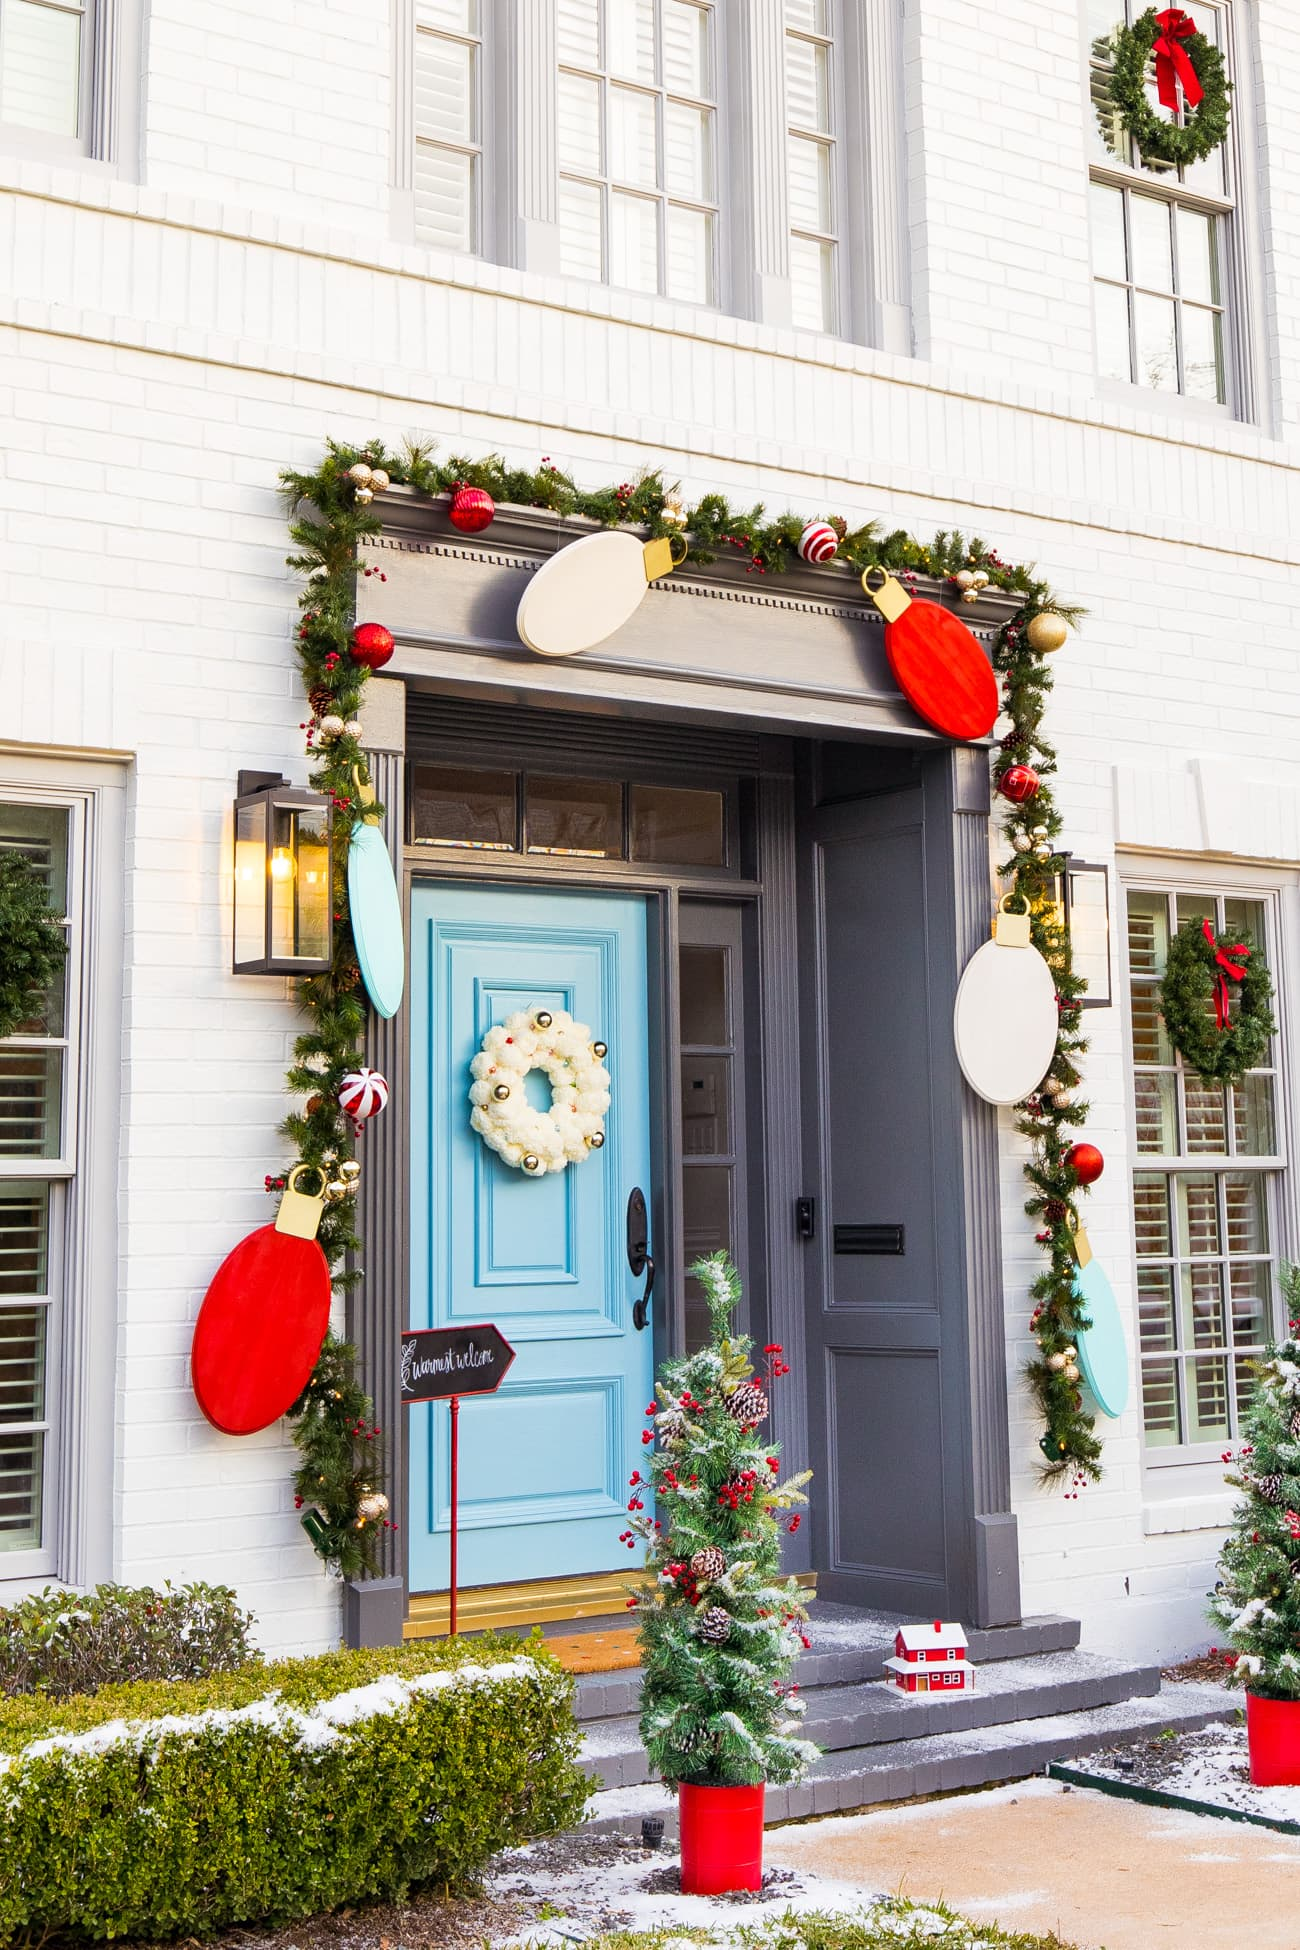 jumbo light bulb garland - Jumbo Lights Outdoor DIY Christmas Decorations! by top Houston lifestyle blogger Ashley Rose of Sugar & Cloth #DIY #howto #christmas #holidays #decorations #decor #home #frontdoor #entrance